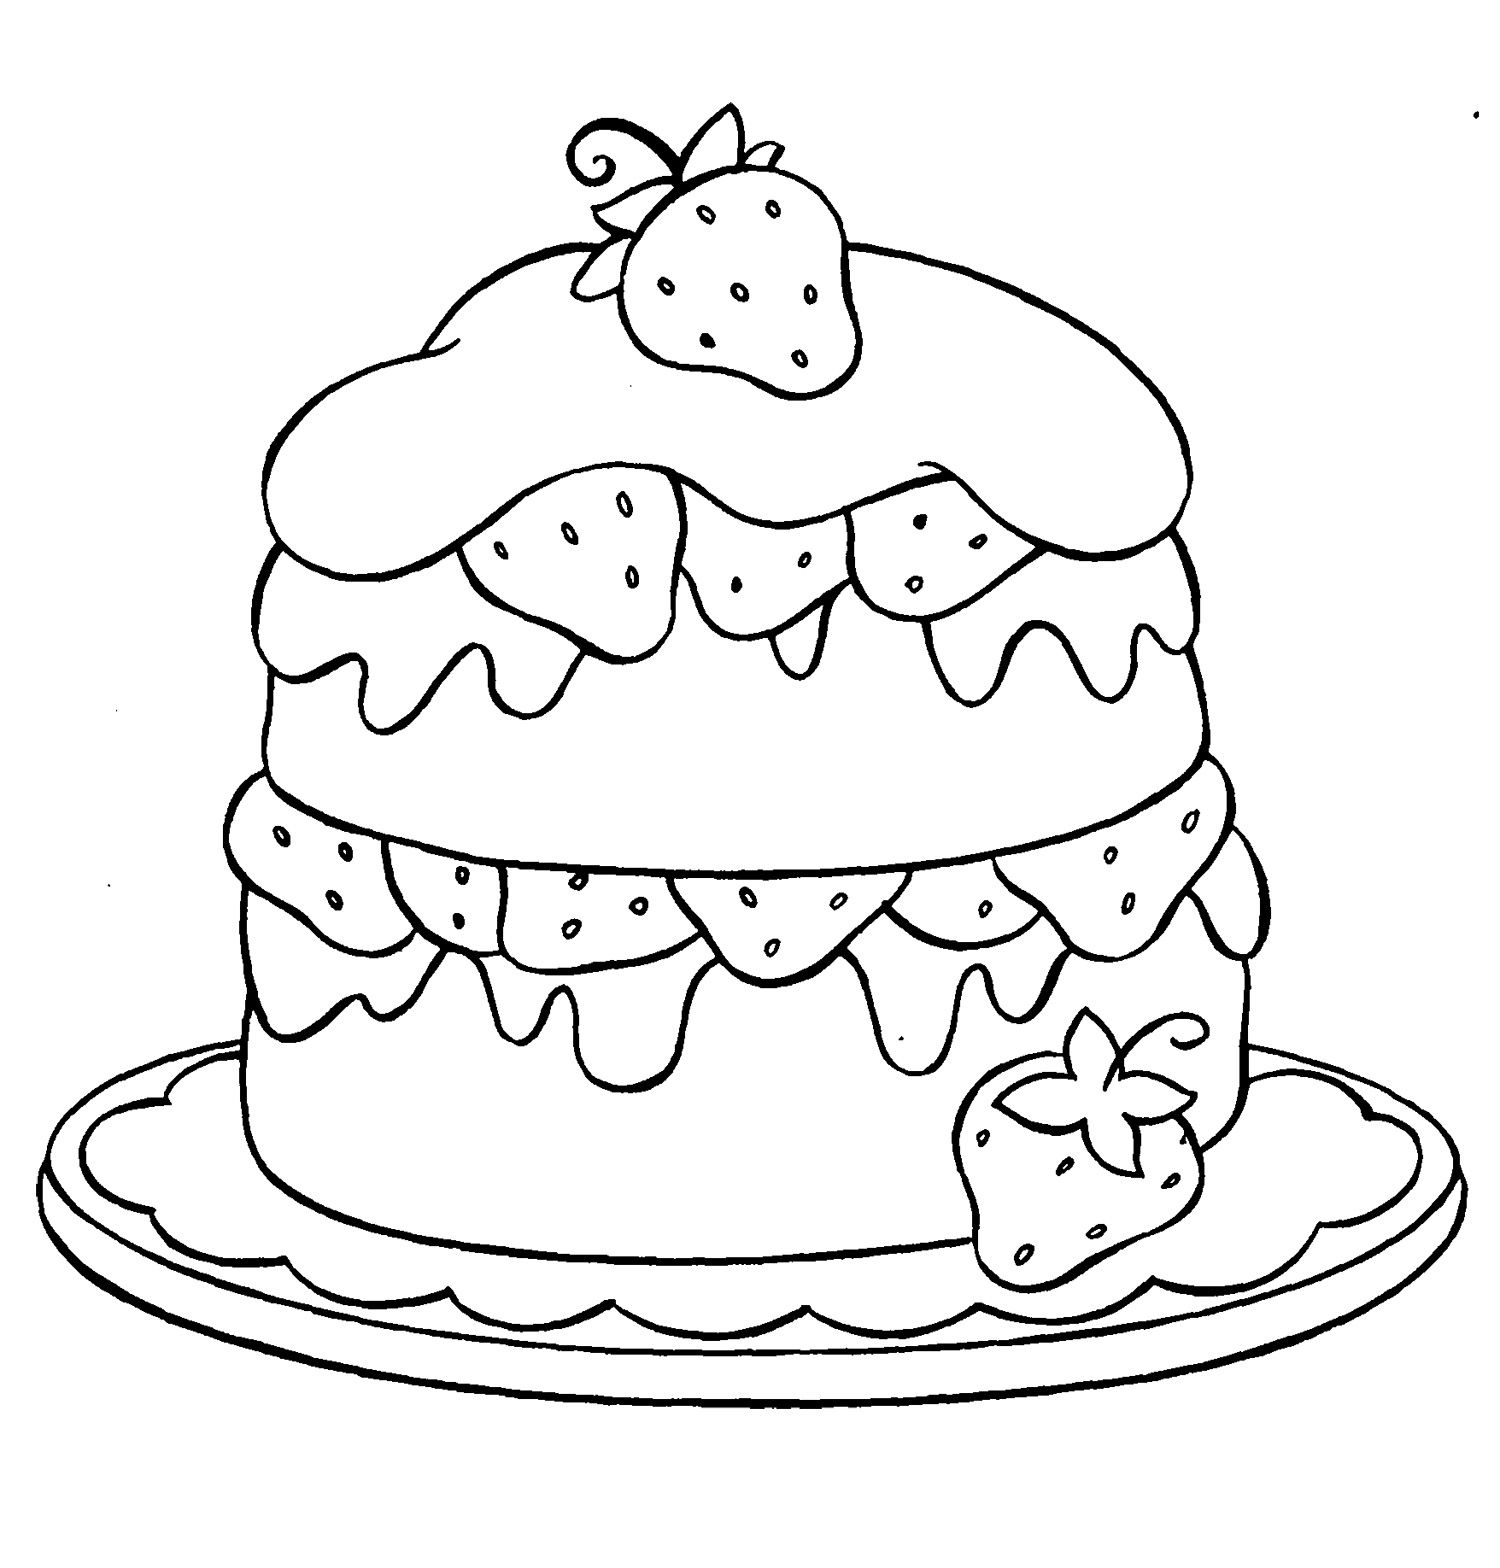 Cupcake Strawberry Coloring Page